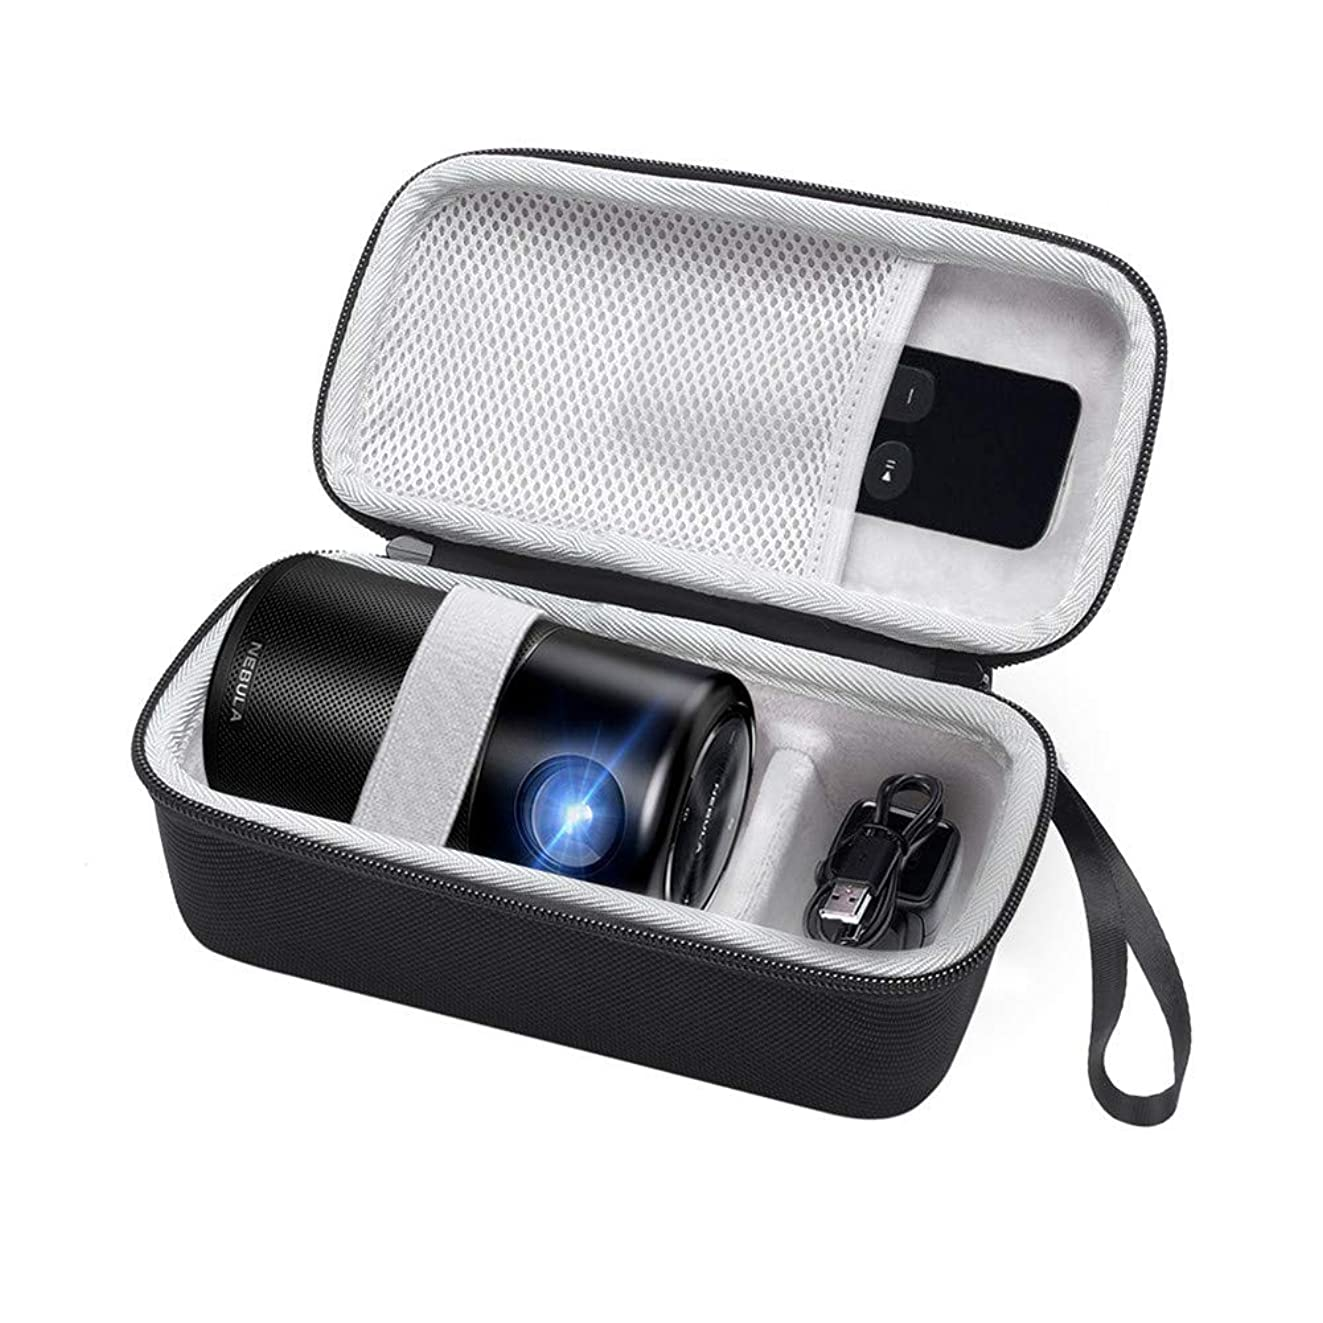 Hard Protection Carry Bag Travel Case for Nebula Capsule Smart Mini Projector, Can Extra Accommodate The Remote Control, Charger Plug, USB Cable etc, Smaller and More Convenient (Case)